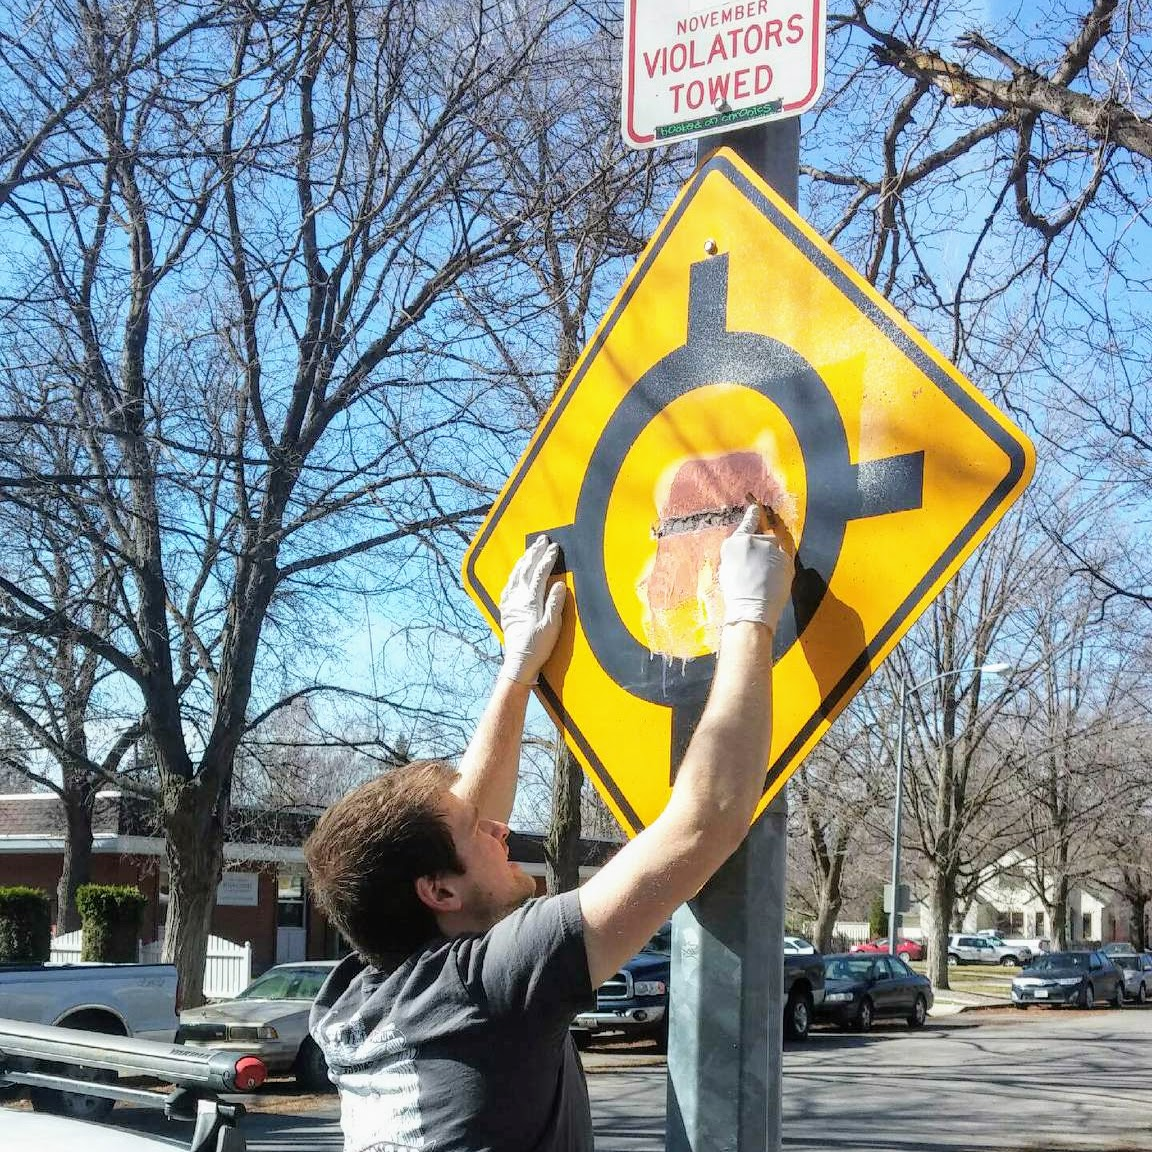 A UM student cleaning graffiti off a street sign.